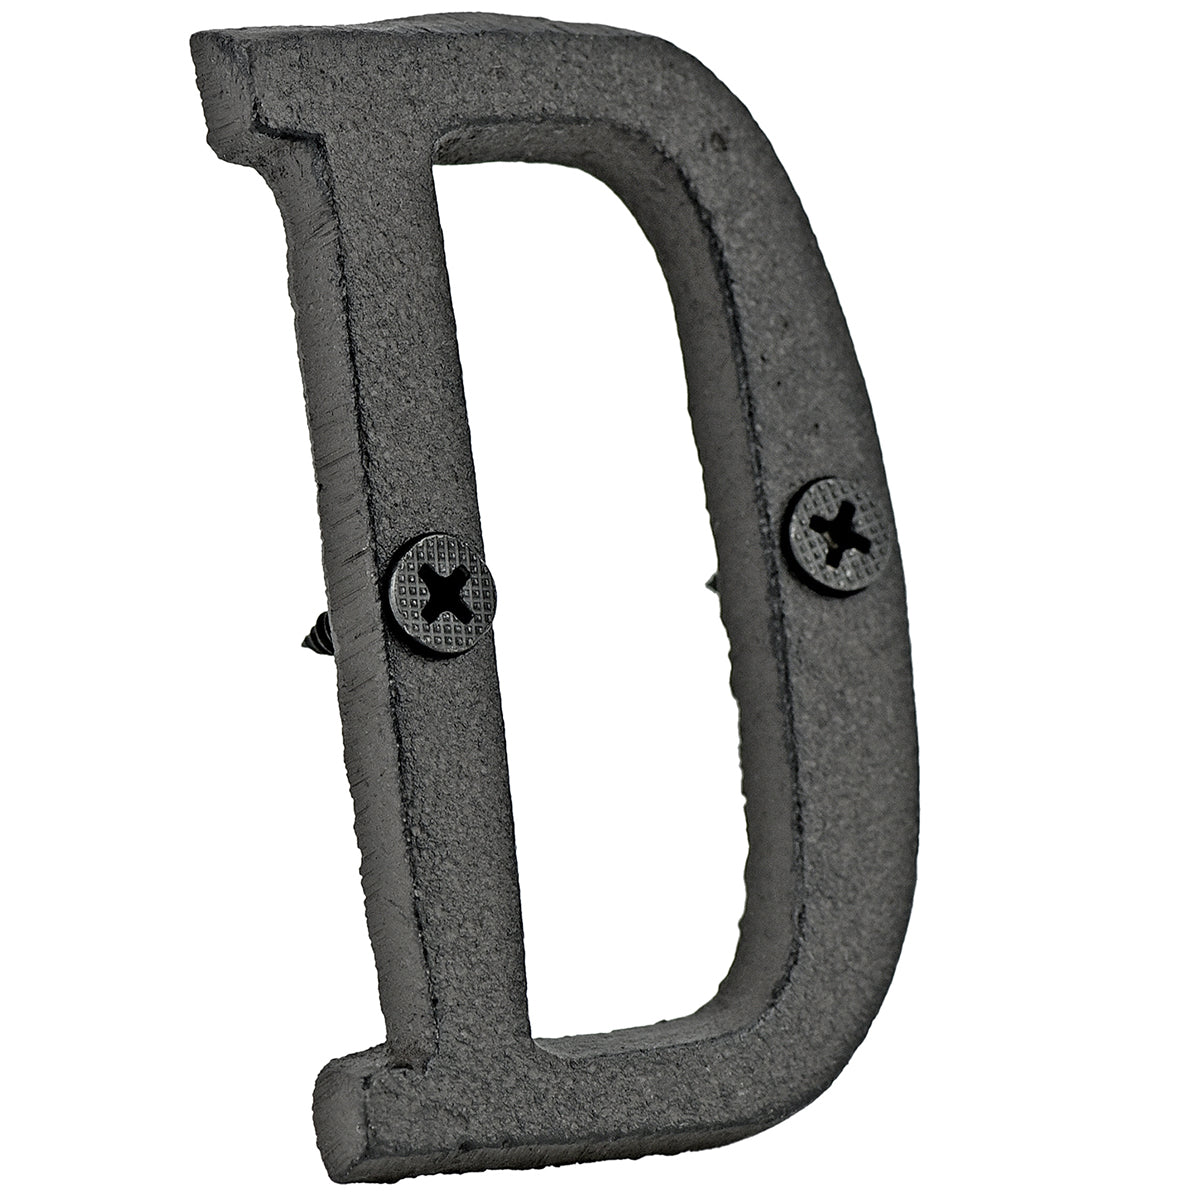 A cast iron house letter sign 'D' with white background